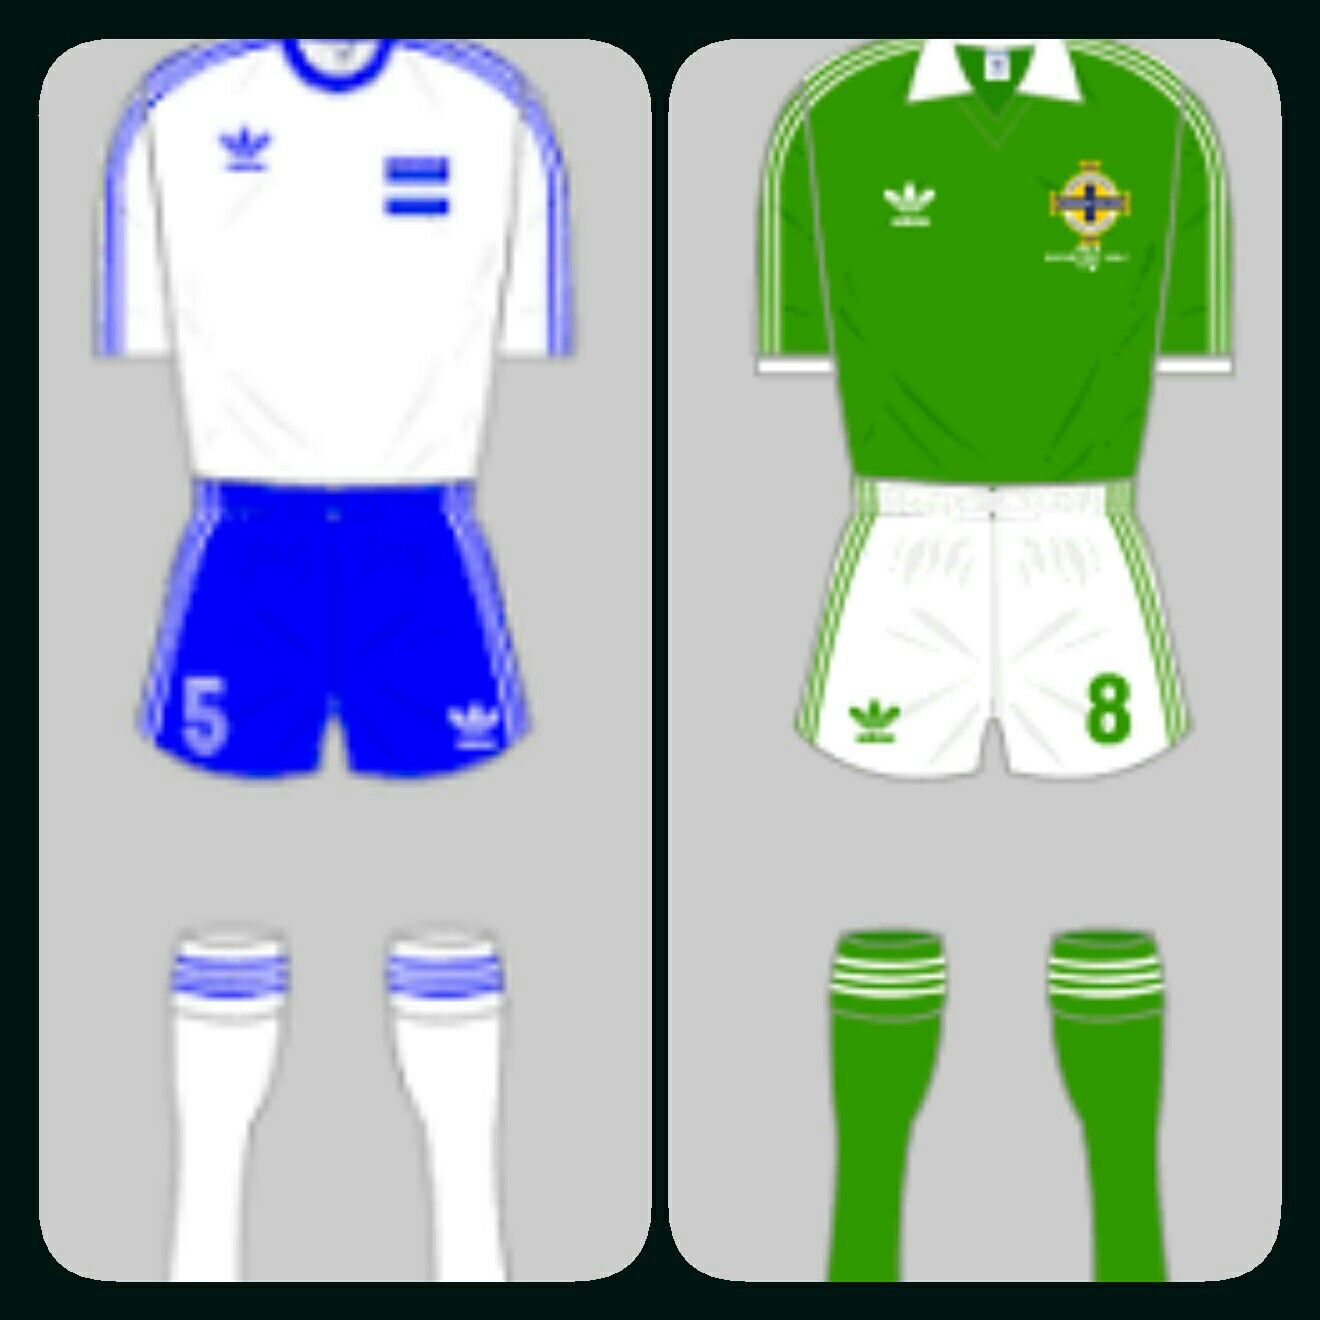 Honduras 1 N. Ireland 1 in 1982 in Zaragoza. Not a good result for either team in Group 5 at the World Cup Finals.